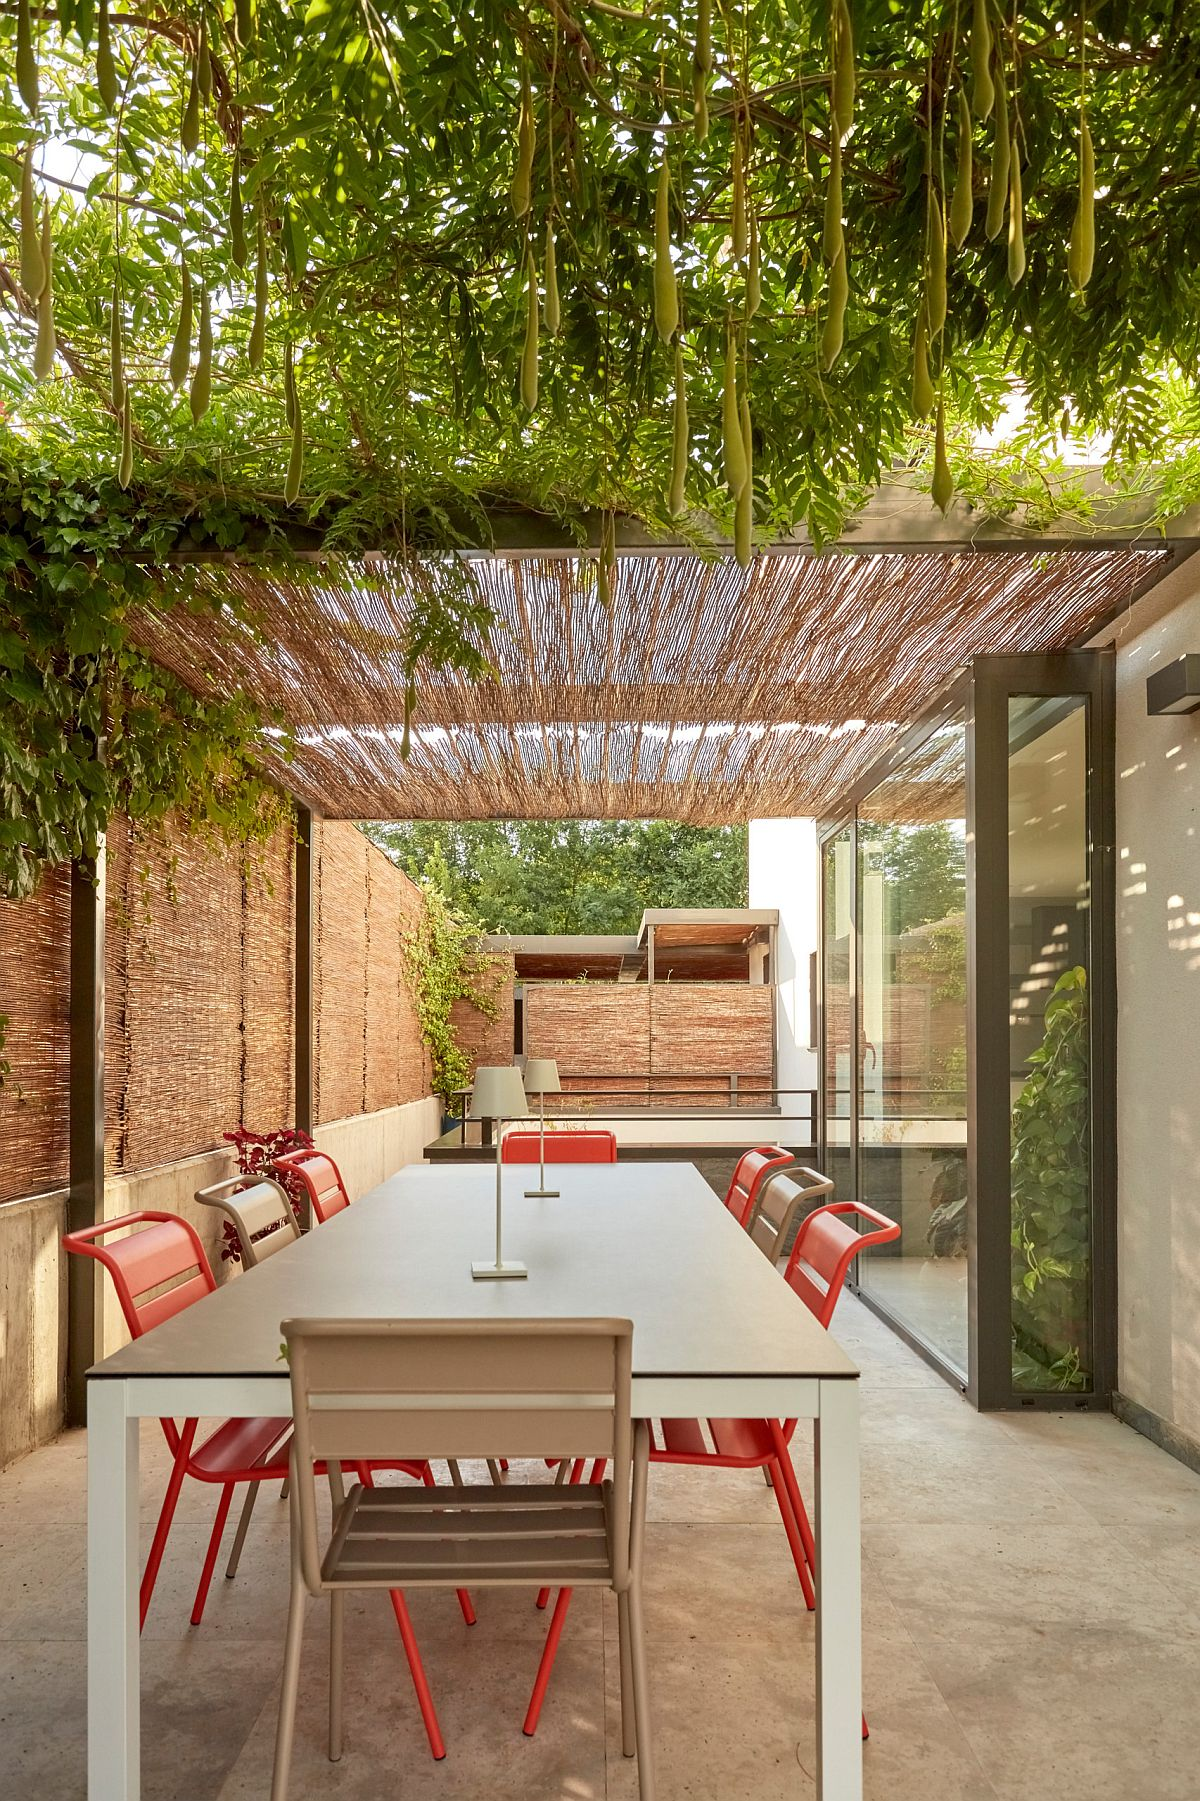 Greenery coupled with contemporary pergola in the relaxing backyard